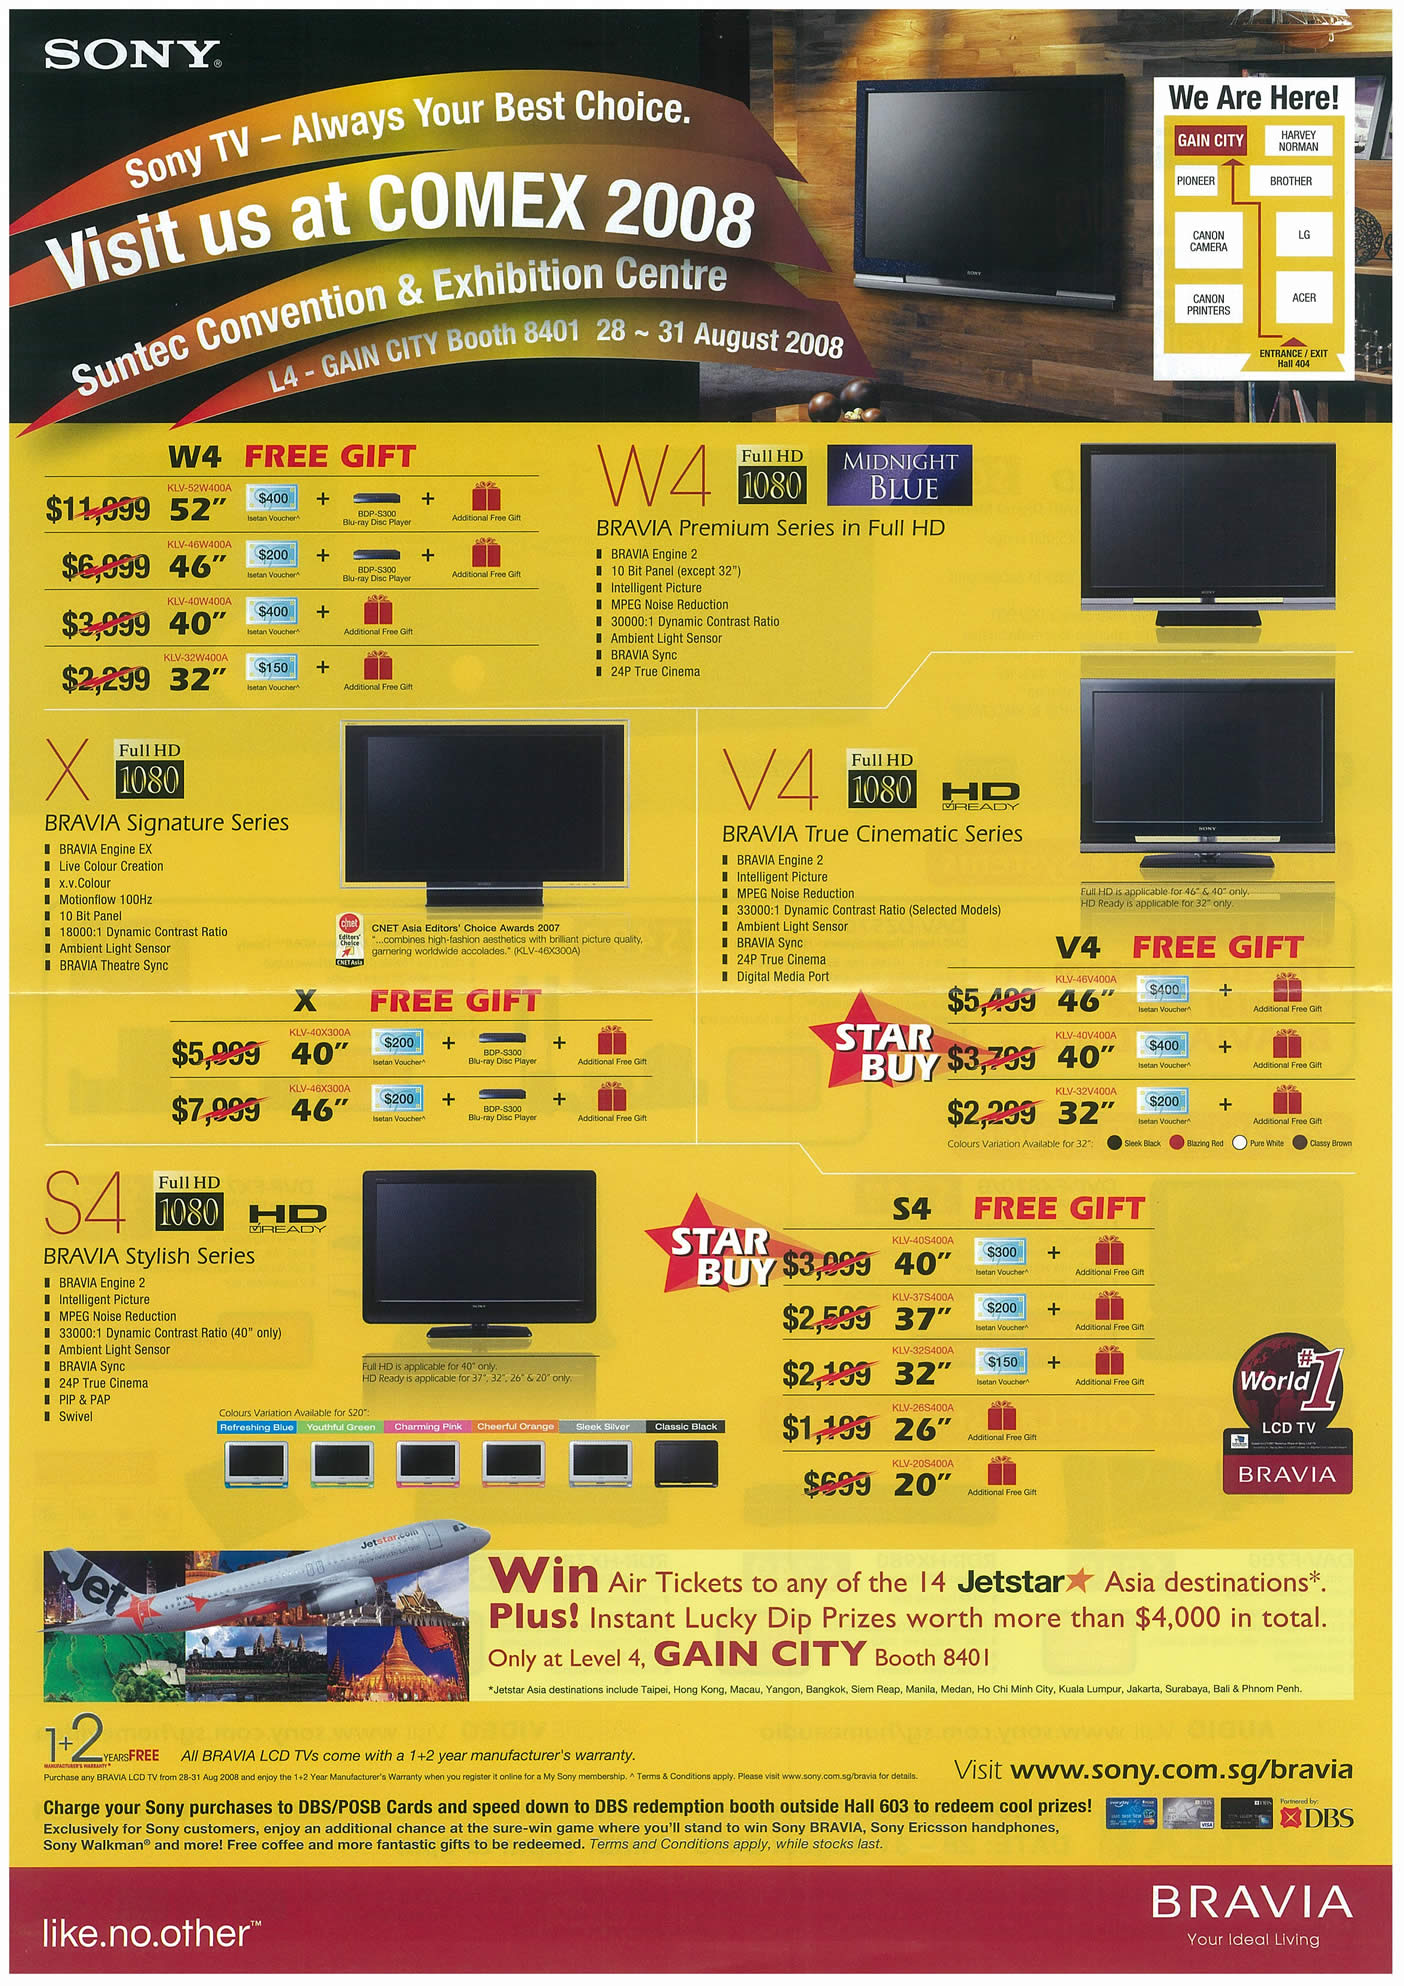 Comex 2008 price list image brochure of Sony LCD TVs Page 1